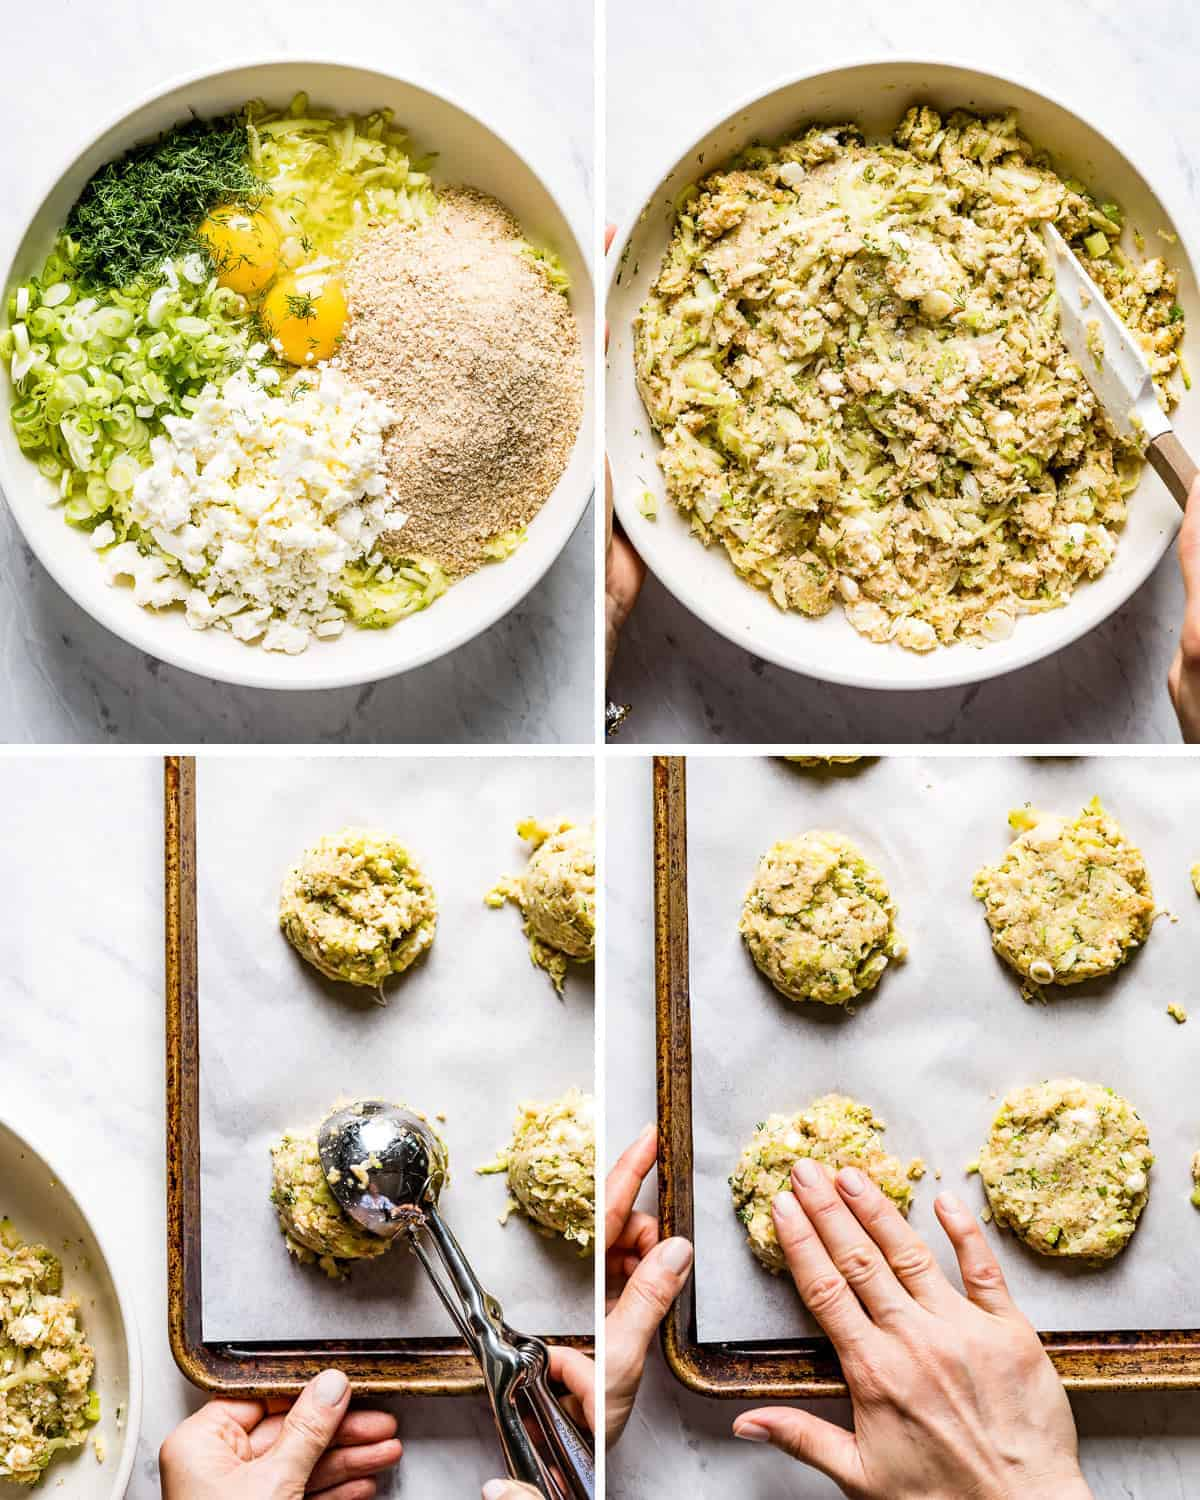 Four images showing how to make courgette patties